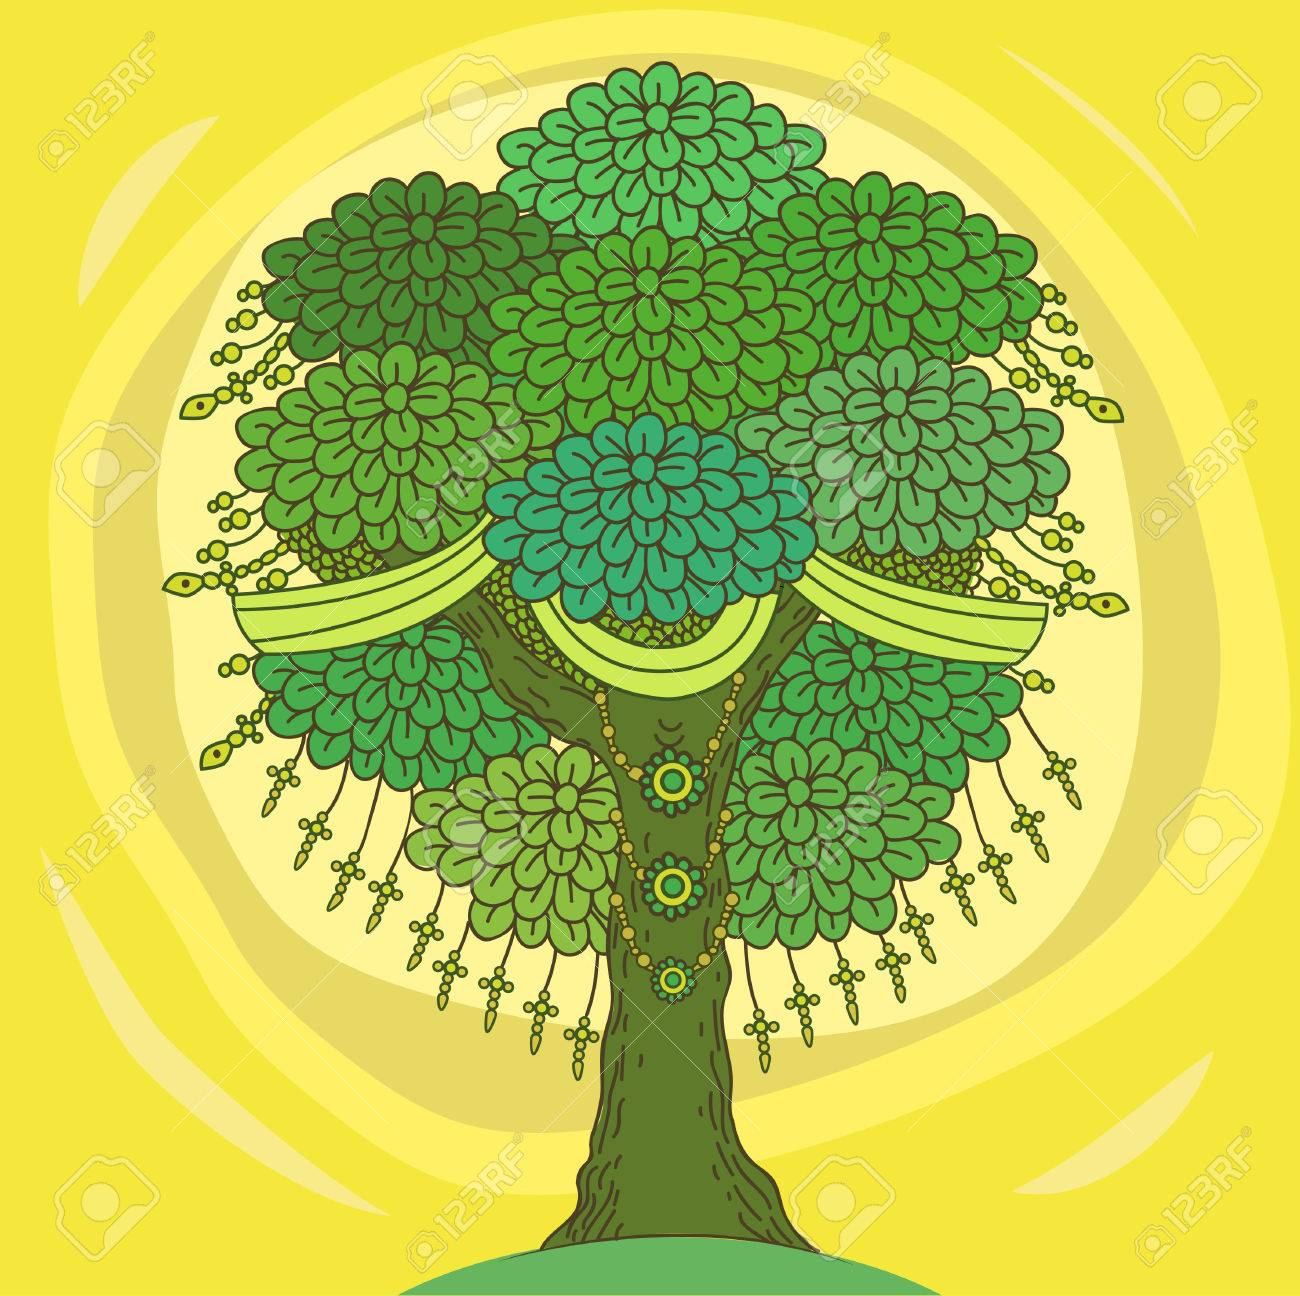 Amazing Color Tree Of Life In The Indian Style With Leaves Cartoon Vector Illustrations